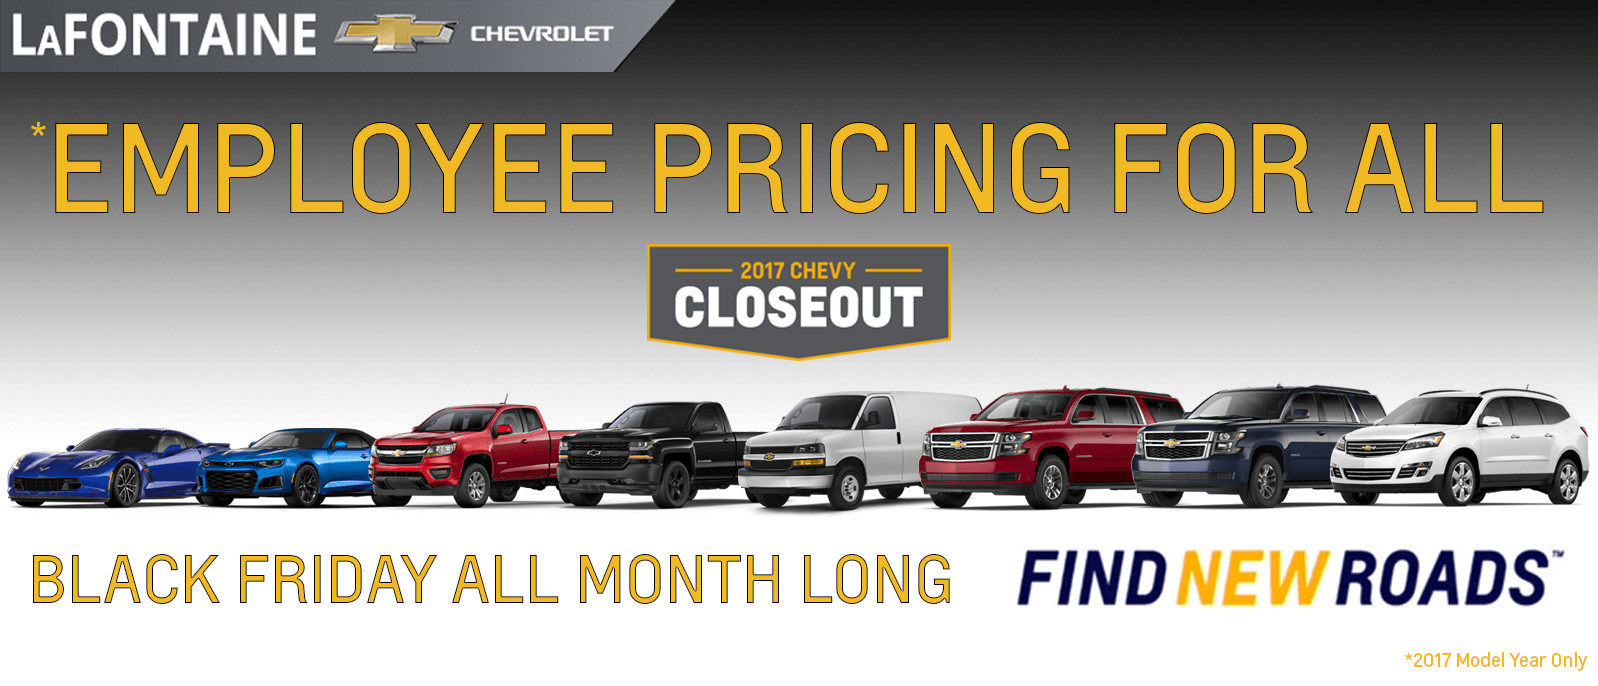 Chevrolet Employee Pricing 2017 Thestartupguide Co